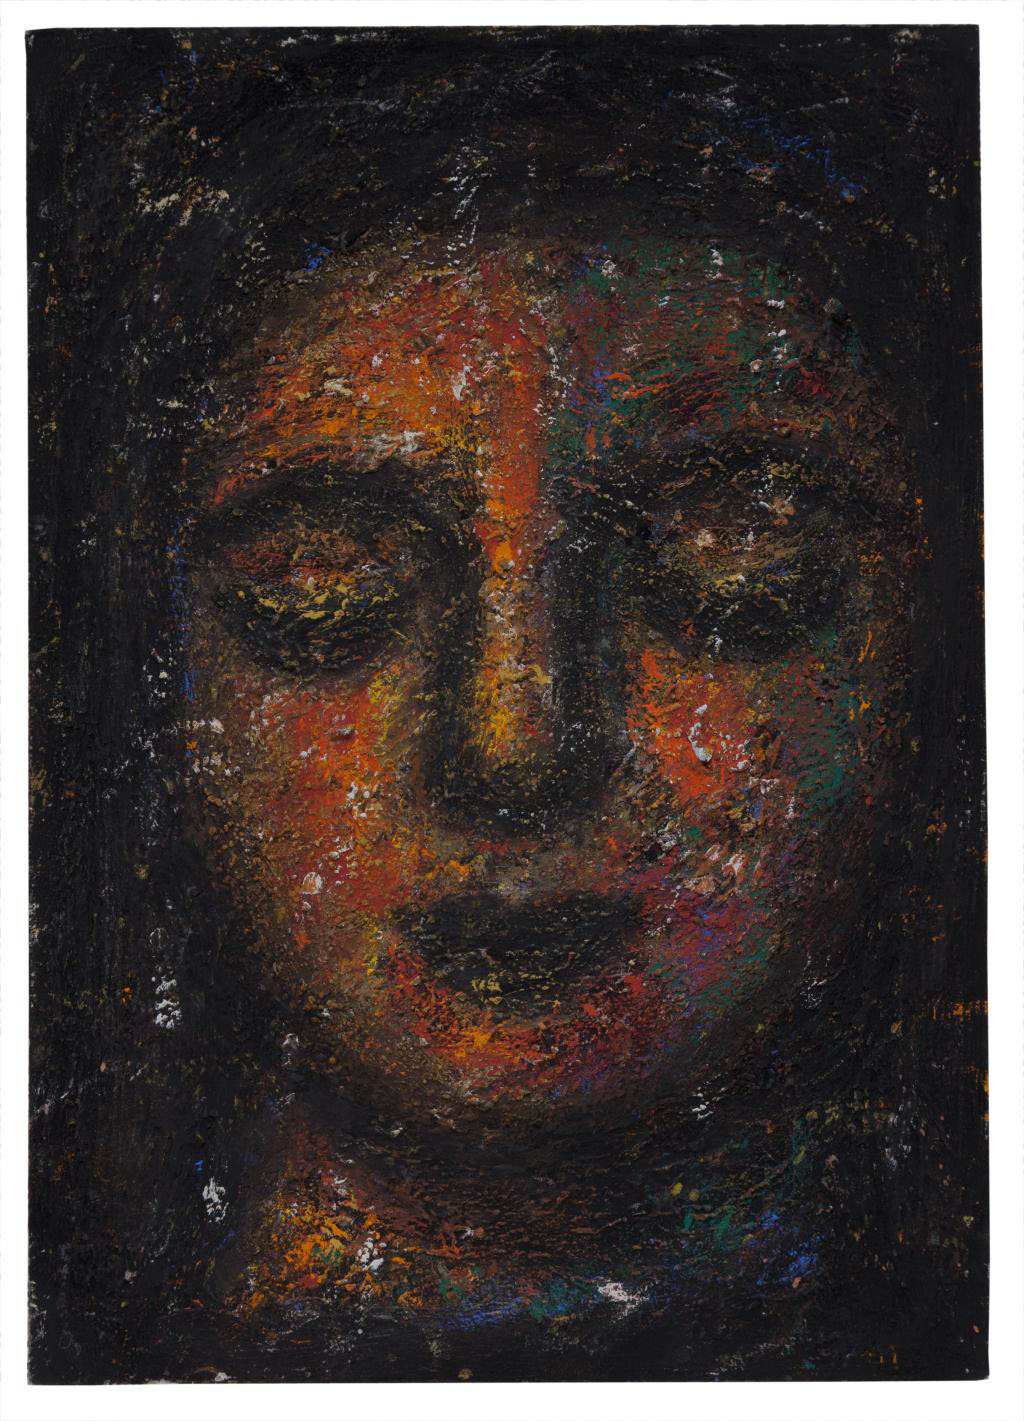 'Megami (Muse)' (1998) by Kazuo Ishii | PRIVATECOLLECTION